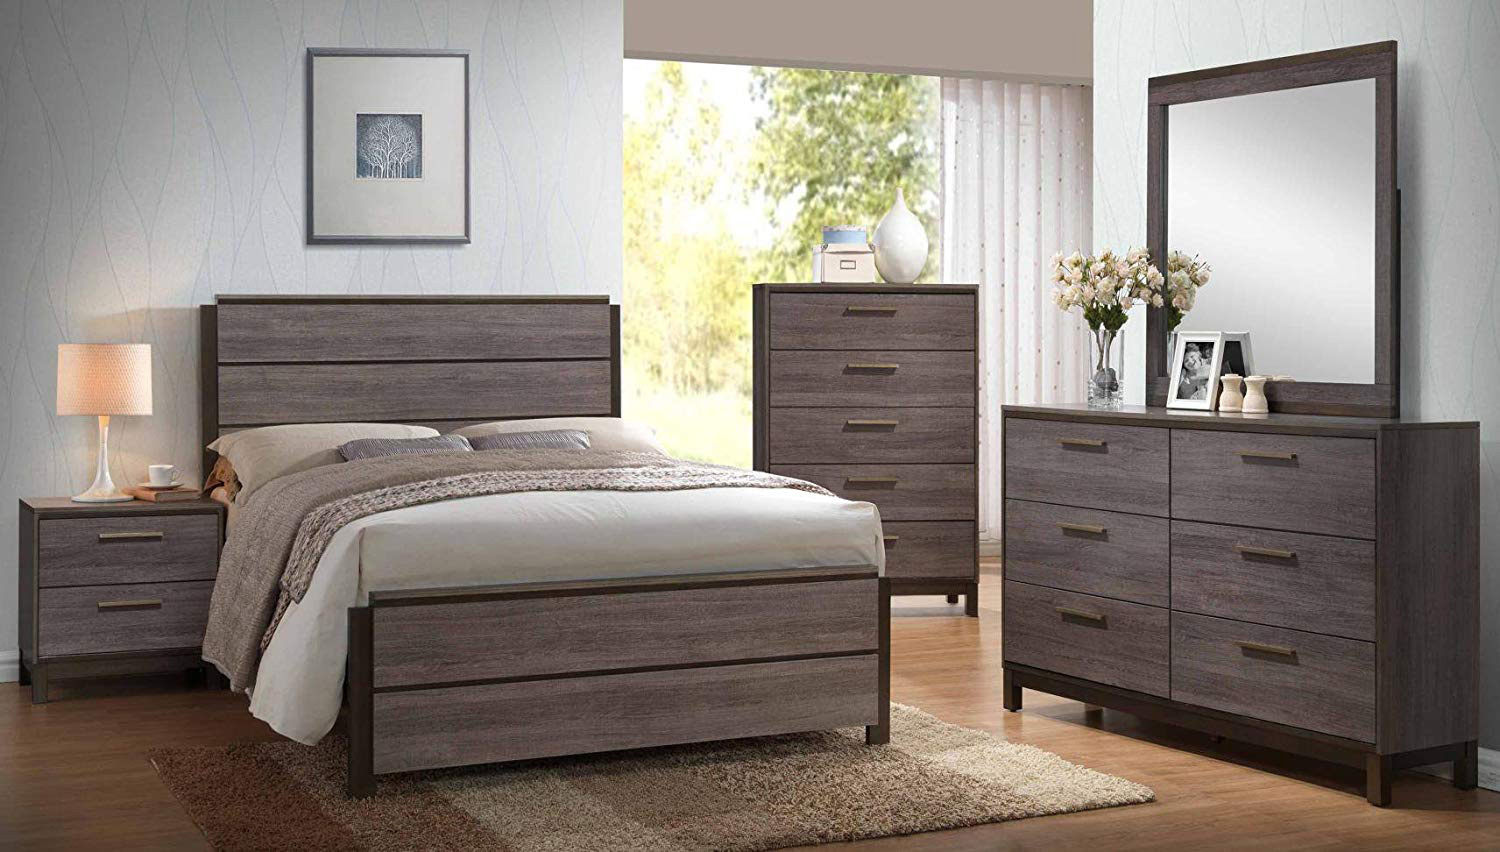 Miraculous 5 Best Selling Bedroom Furniture Sets On Amazon Real Simple Home Interior And Landscaping Transignezvosmurscom